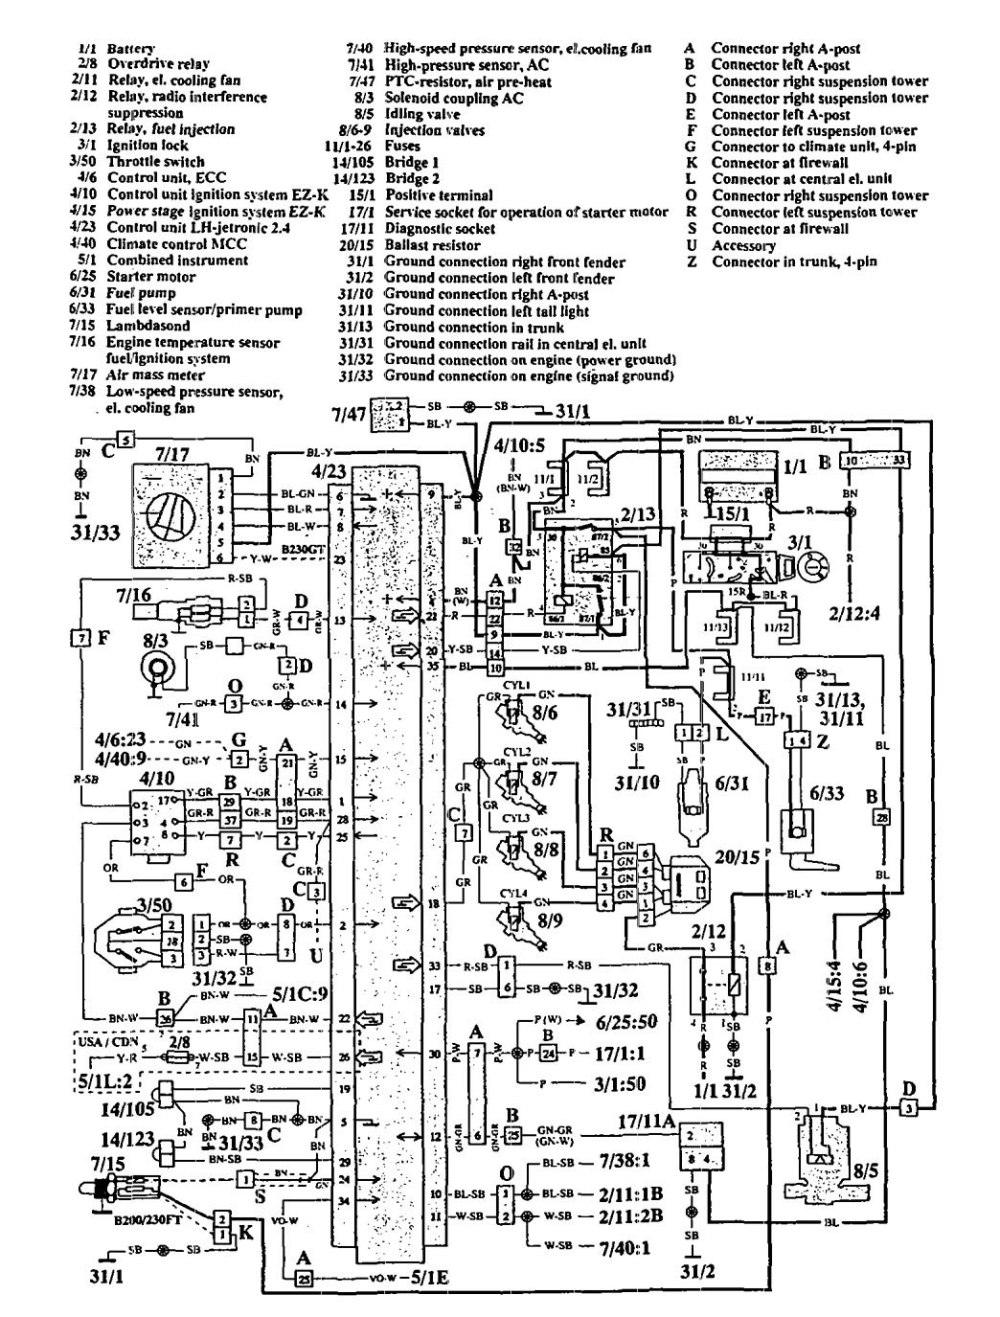 medium resolution of jcb starter wiring diagram wiring diagram updatewiring diagram for a jcb wiring diagrams spy international truck